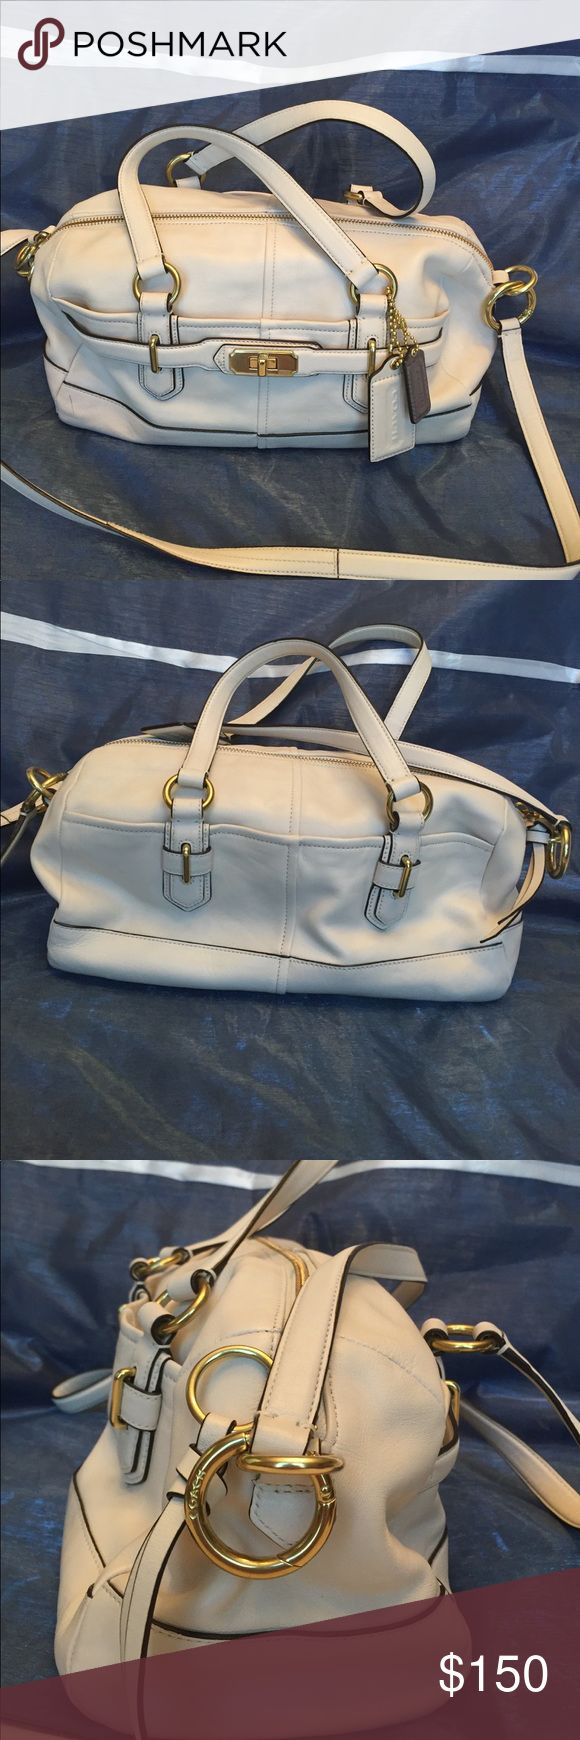 NWOT COACH SATCHEL PURSE Gorgeous ivory satchel purse  by Coach with gray lining and gold toned hardware. Purse has two outside storage pockets that snap shut and in the central compartment has a zippered pocket and two slip pockets. In like new condition has only been stored and never used. Coach Bags Satchels